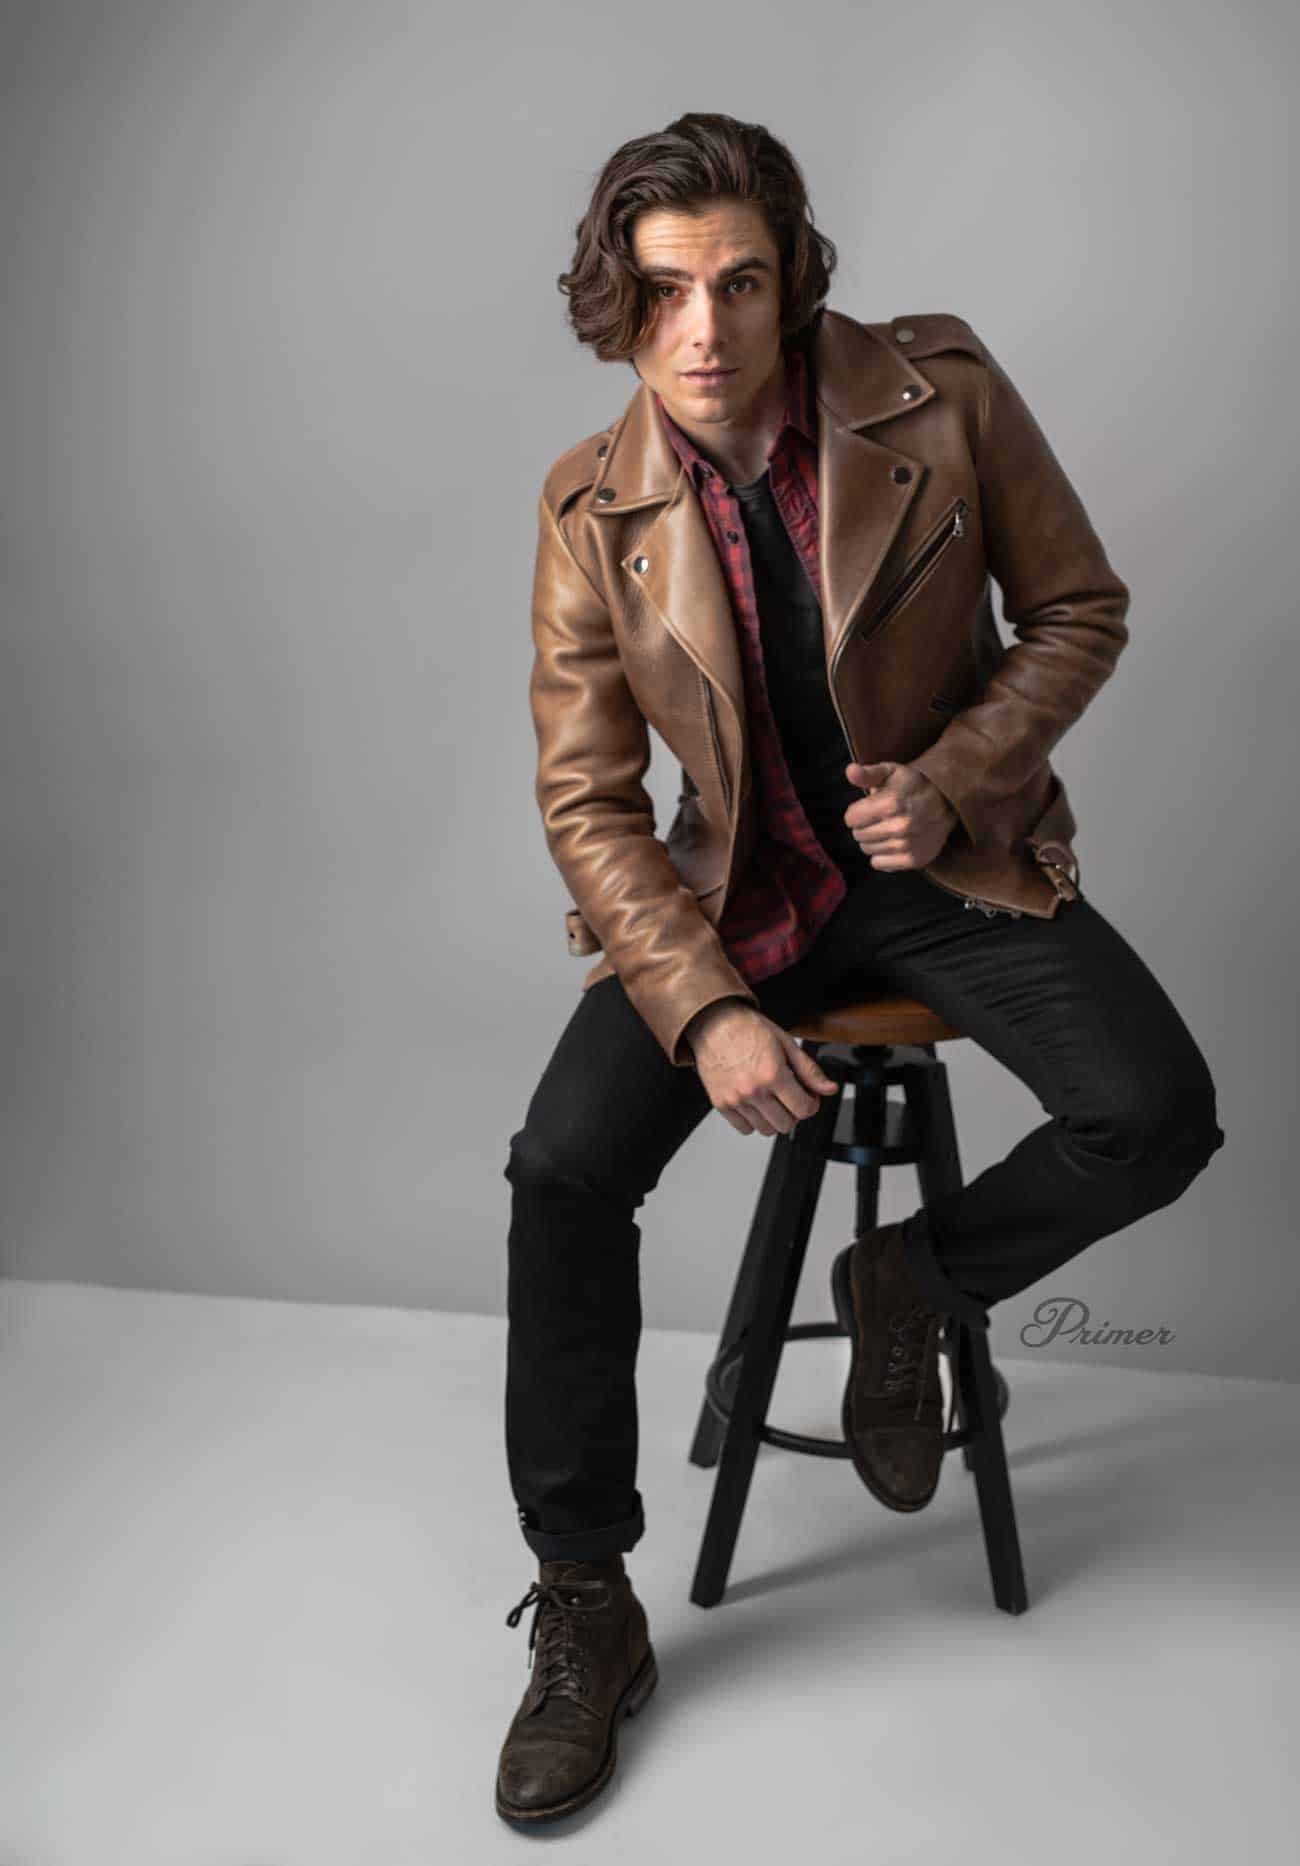 fca4244d2ae brown leather jacket with black jeans. Chromexcel Leather Jacket: Thursday  Boot Co. ...